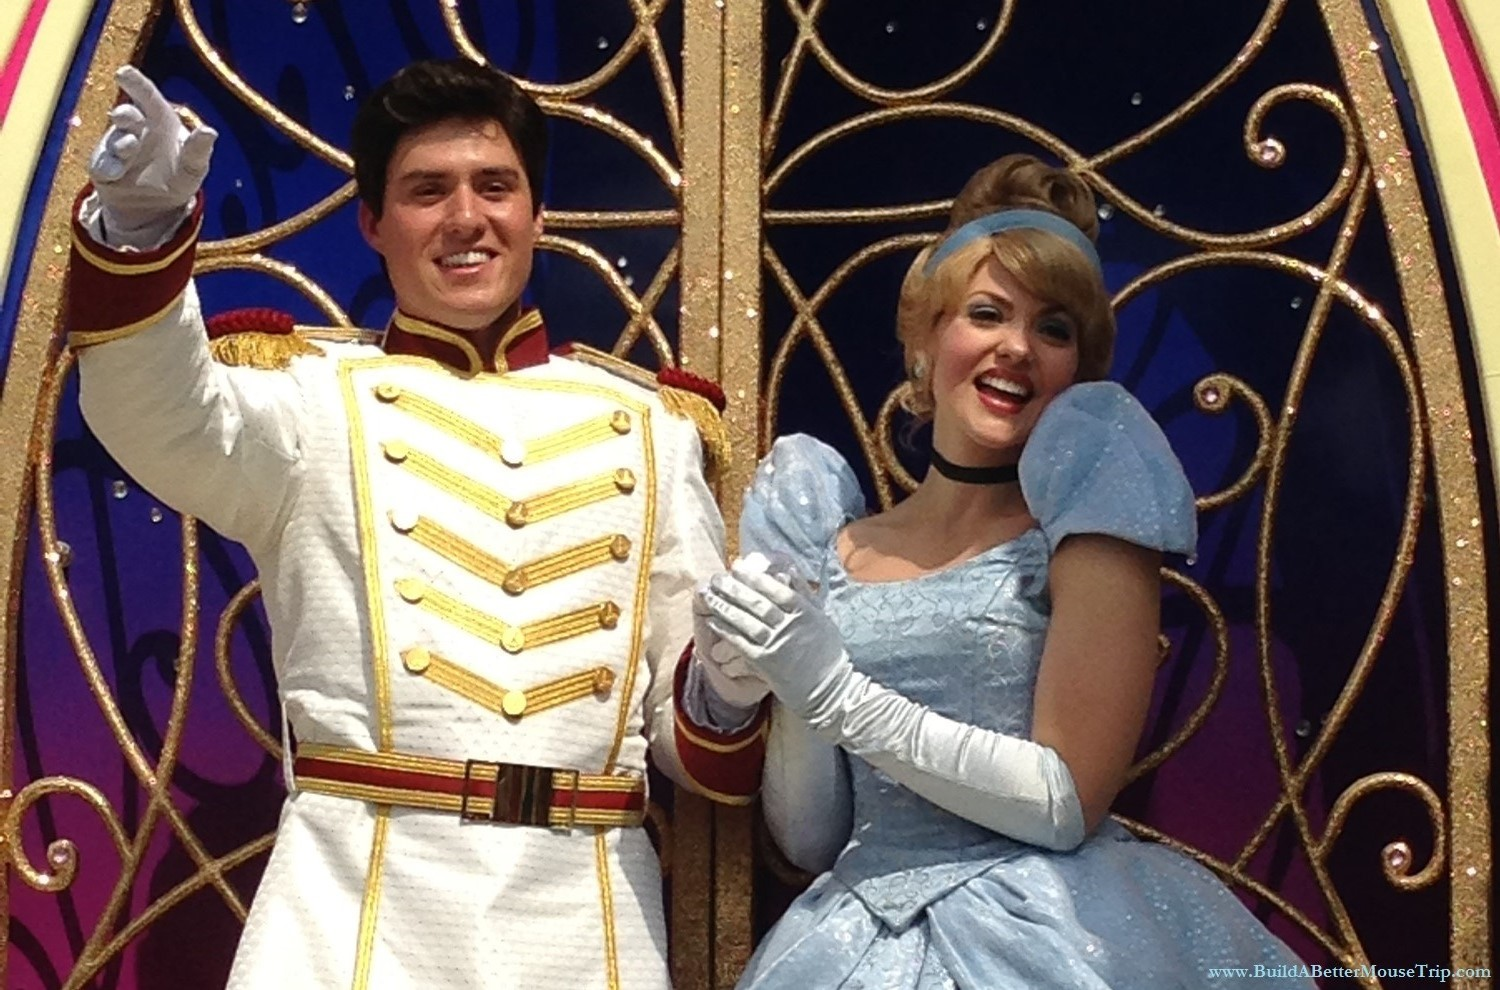 Cinderella and Prince Charming in the Festival of Fantasy Parade in the Magic Kingdom at Disney World.